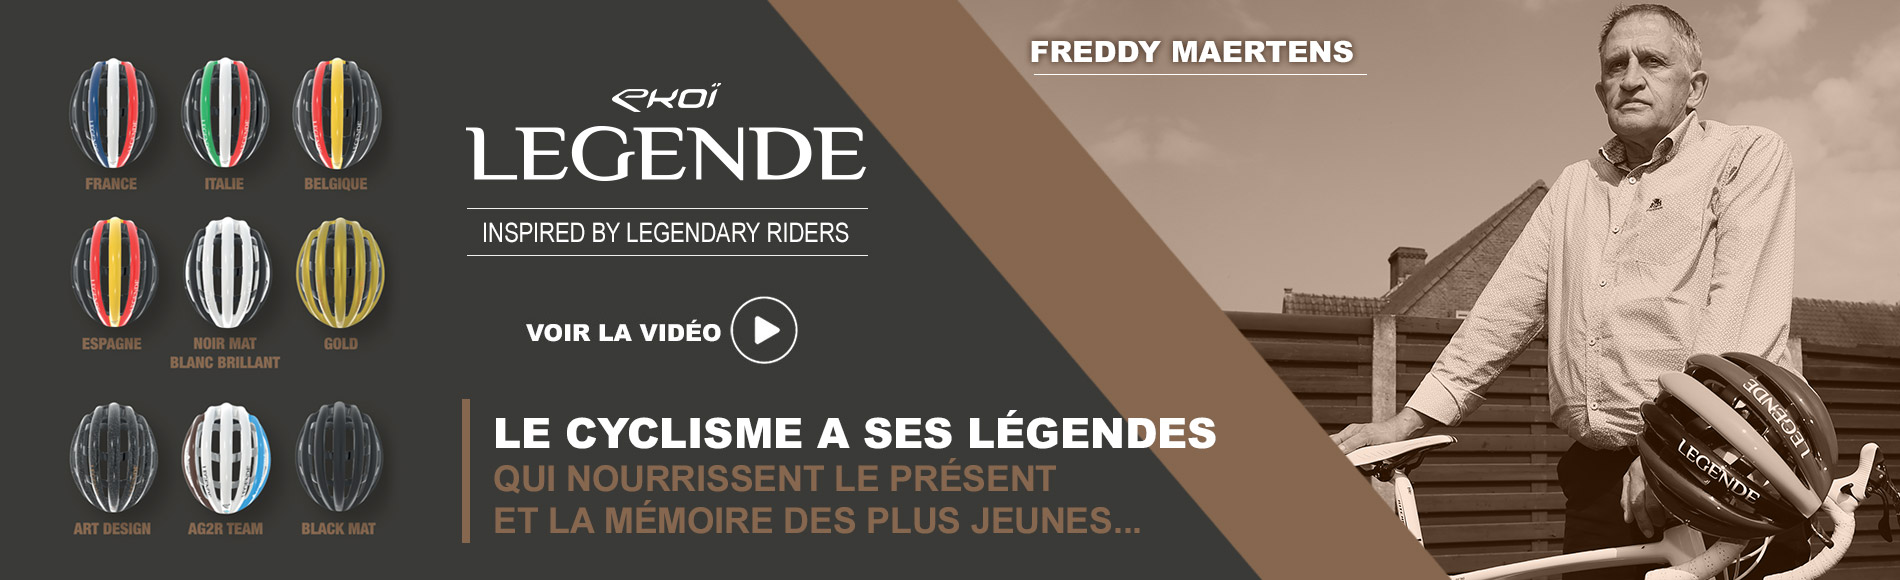 Caque EKOI LEGENDE Freddy Martens